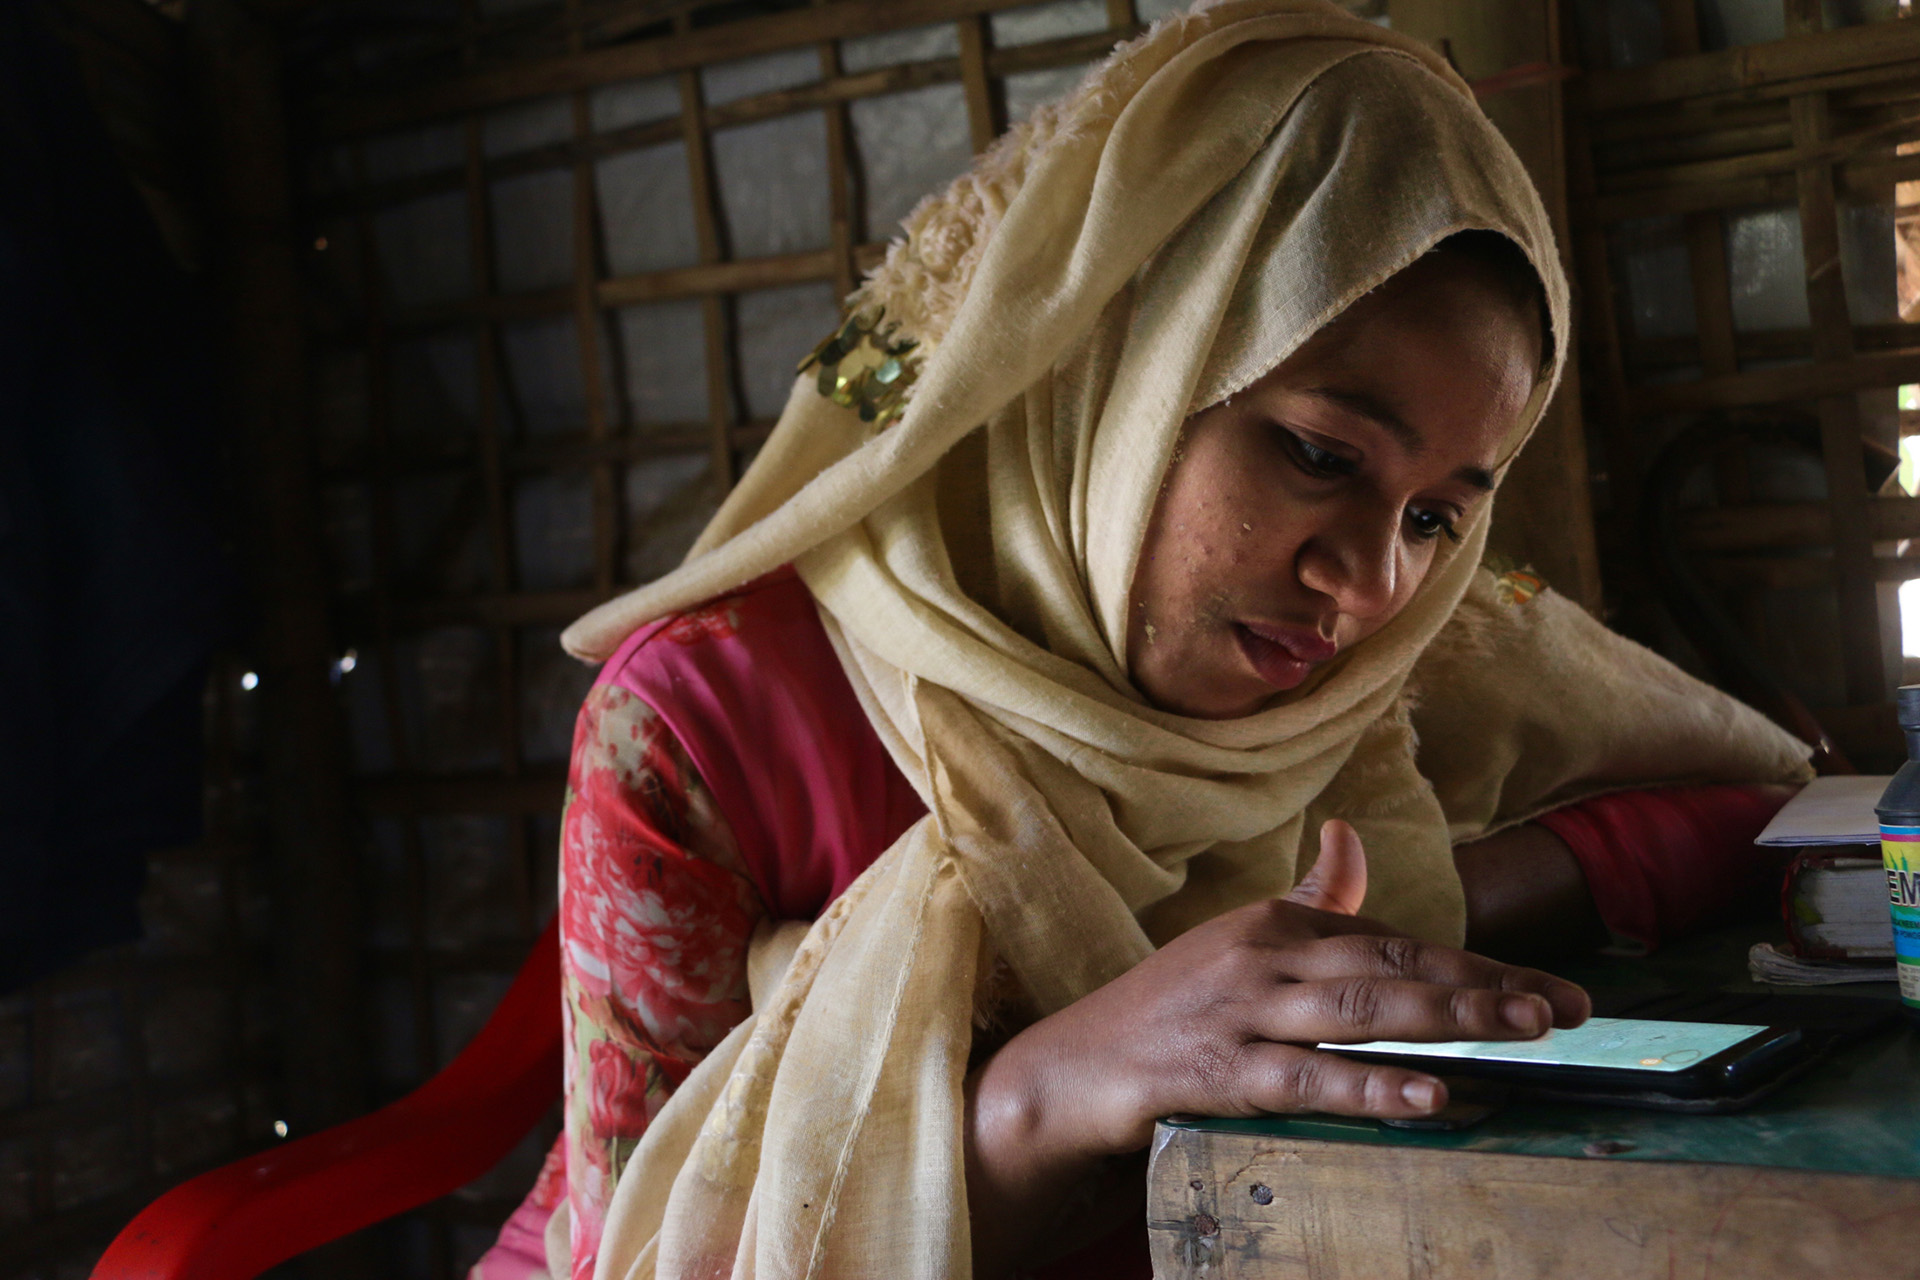 Image of Omal Khair on her phone